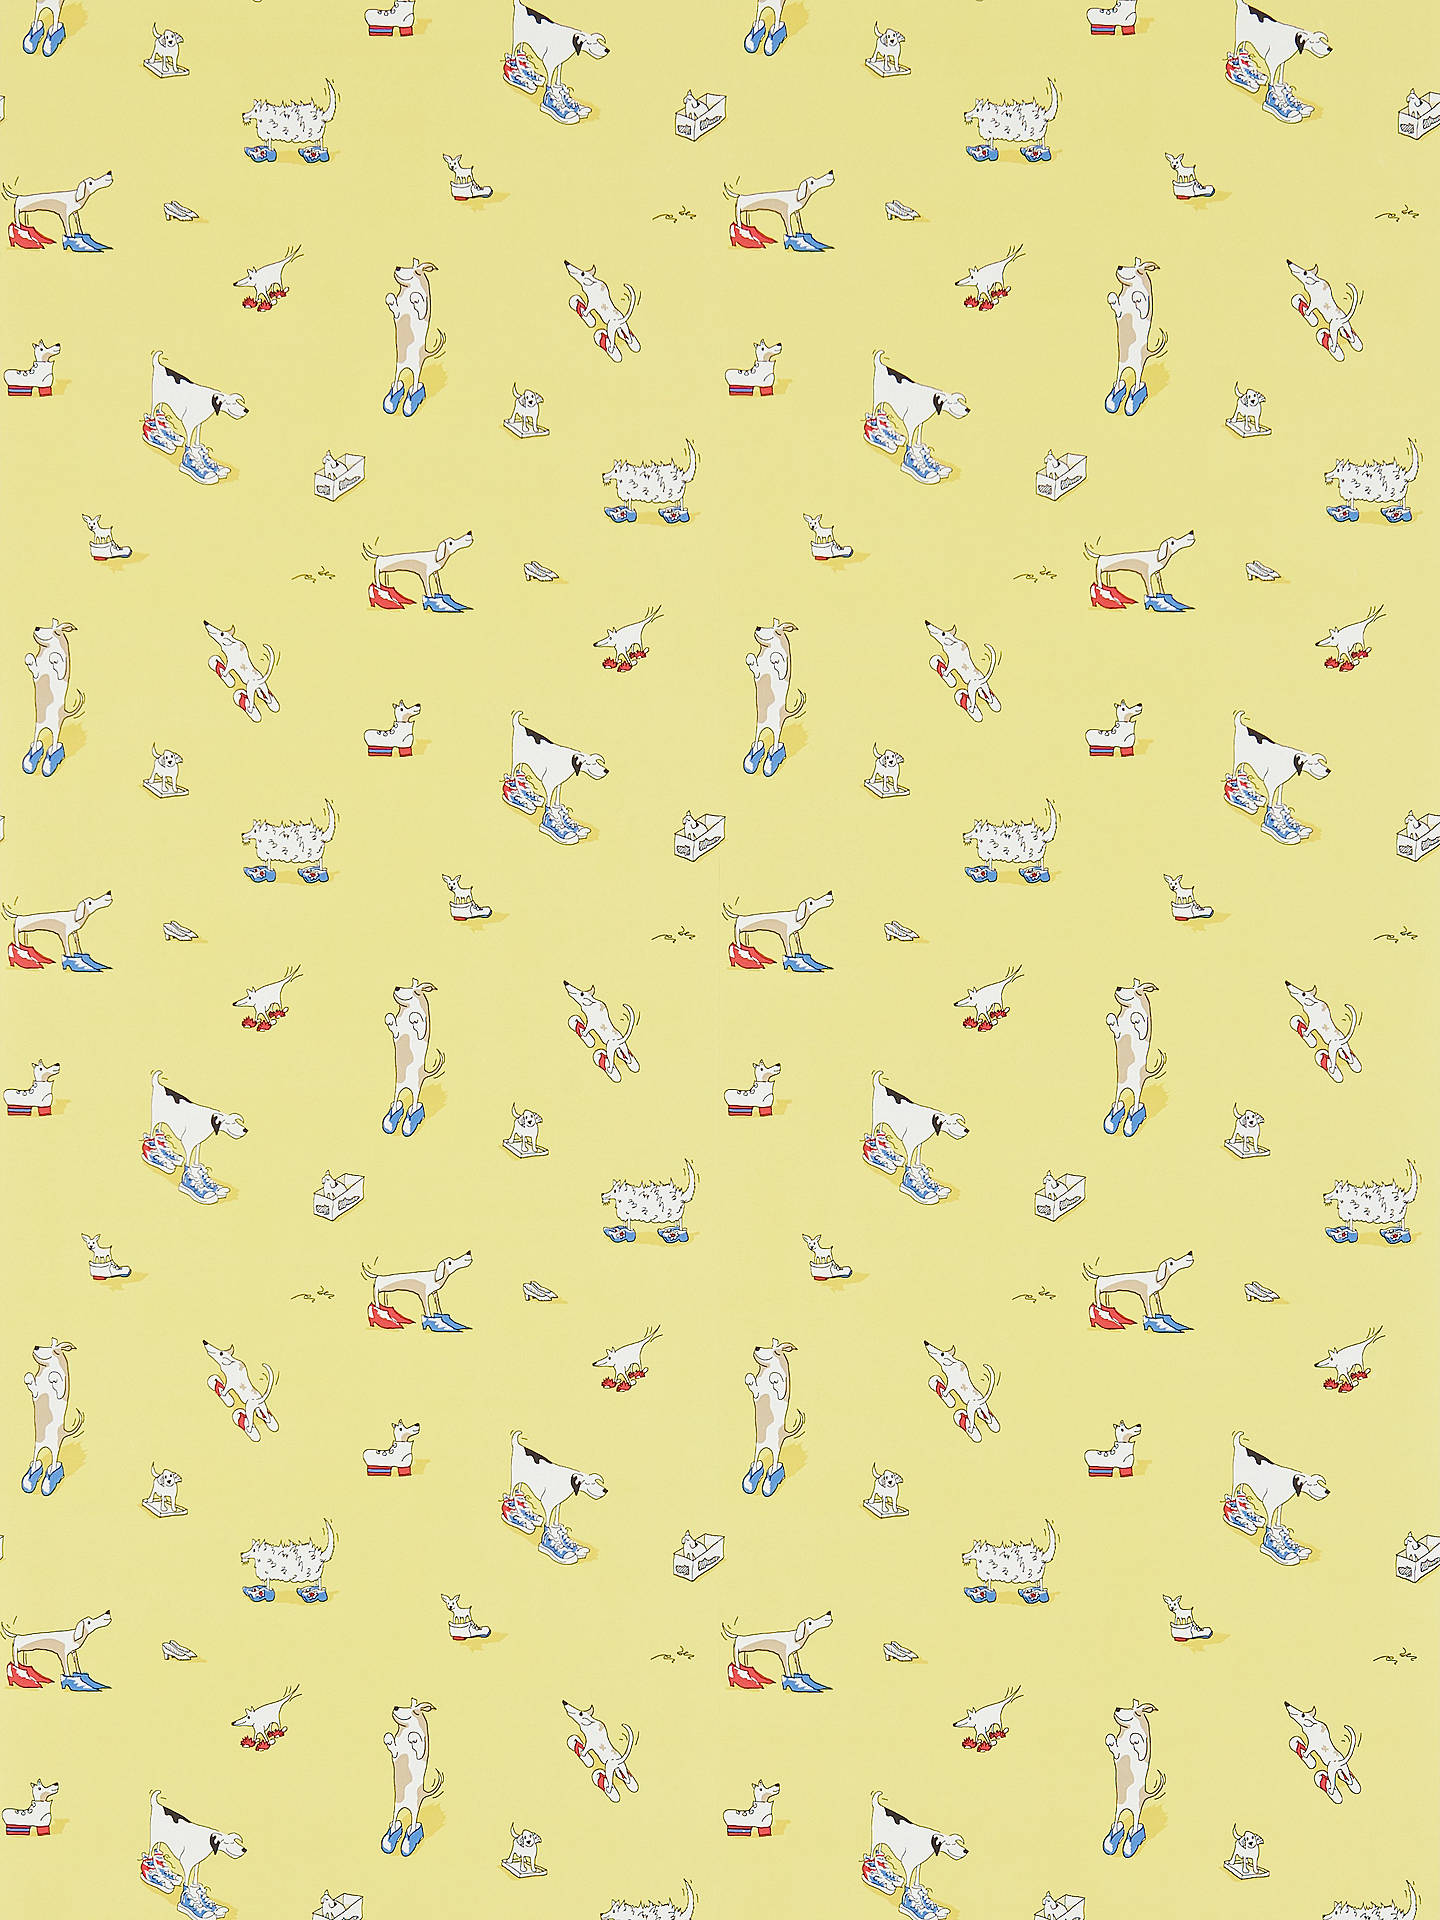 Buy Sanderson Dogs in Clogs Wallpaper, Yellow, DLIT214012 Online at johnlewis.com